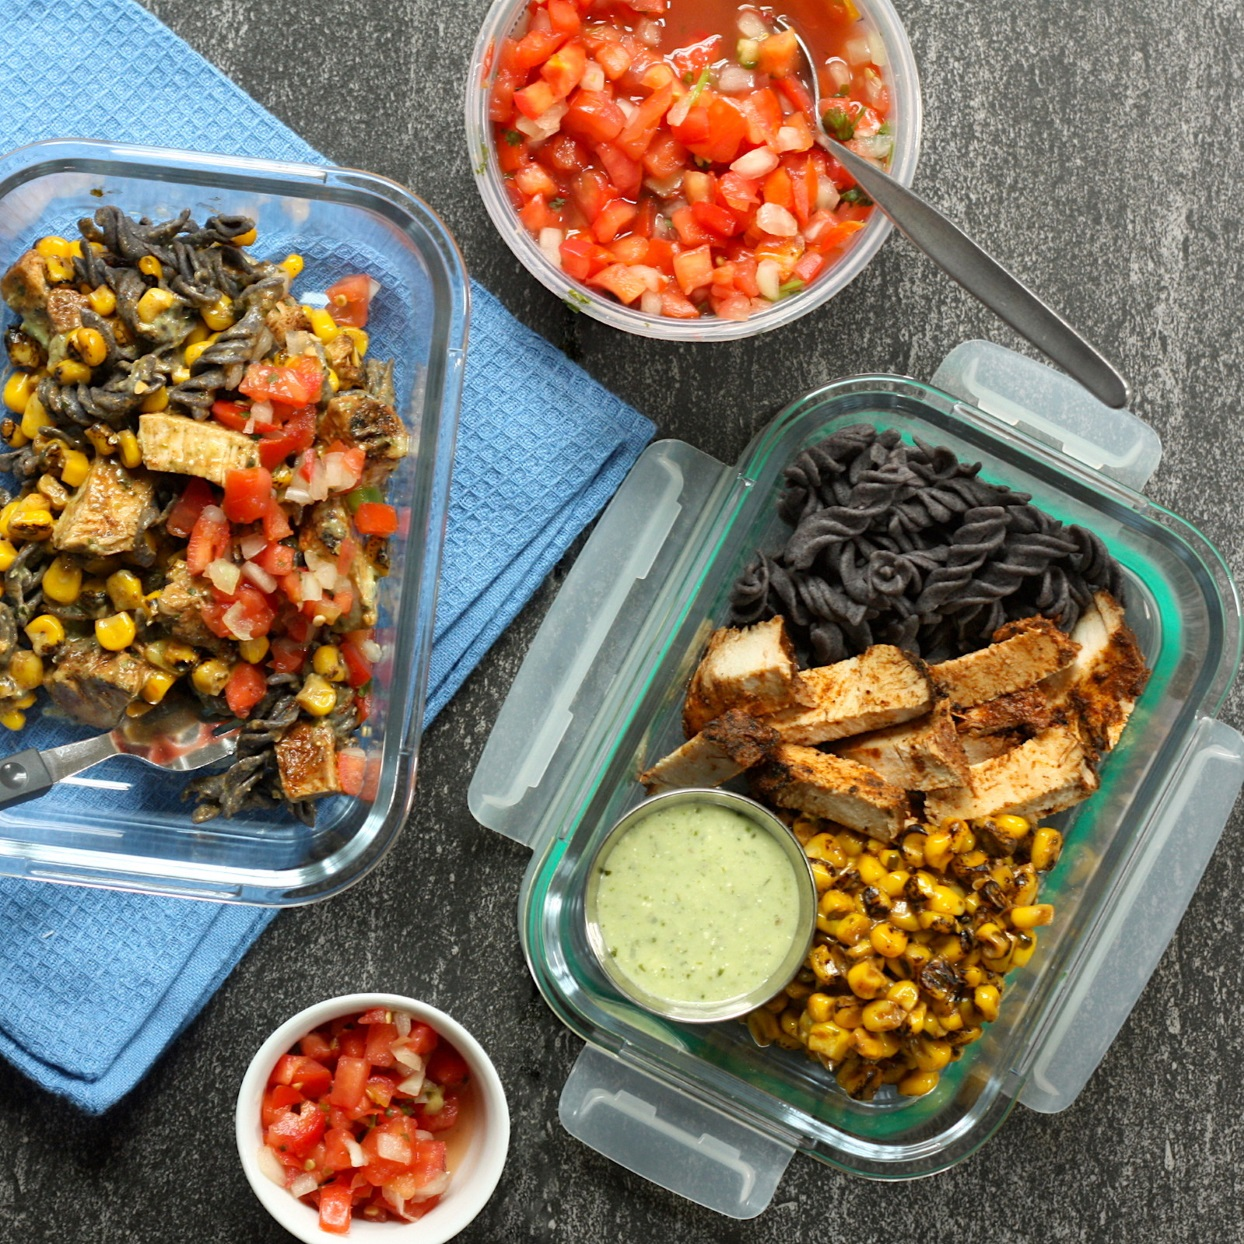 Meal-prep a week's worth of delicious and satisfying high-fiber lunches with just 5 simple ingredients and 20 minutes. In this Southwestern-style pasta salad, we're using pasta made with black beans to bump up the fiber to an impressive 14 grams per serving. Paired with seasoned chicken strips and a flavorful corn salad--shortcut ingredients you can often find at your local specialty grocery store--this meal-prep lunch is one you'll get excited for.